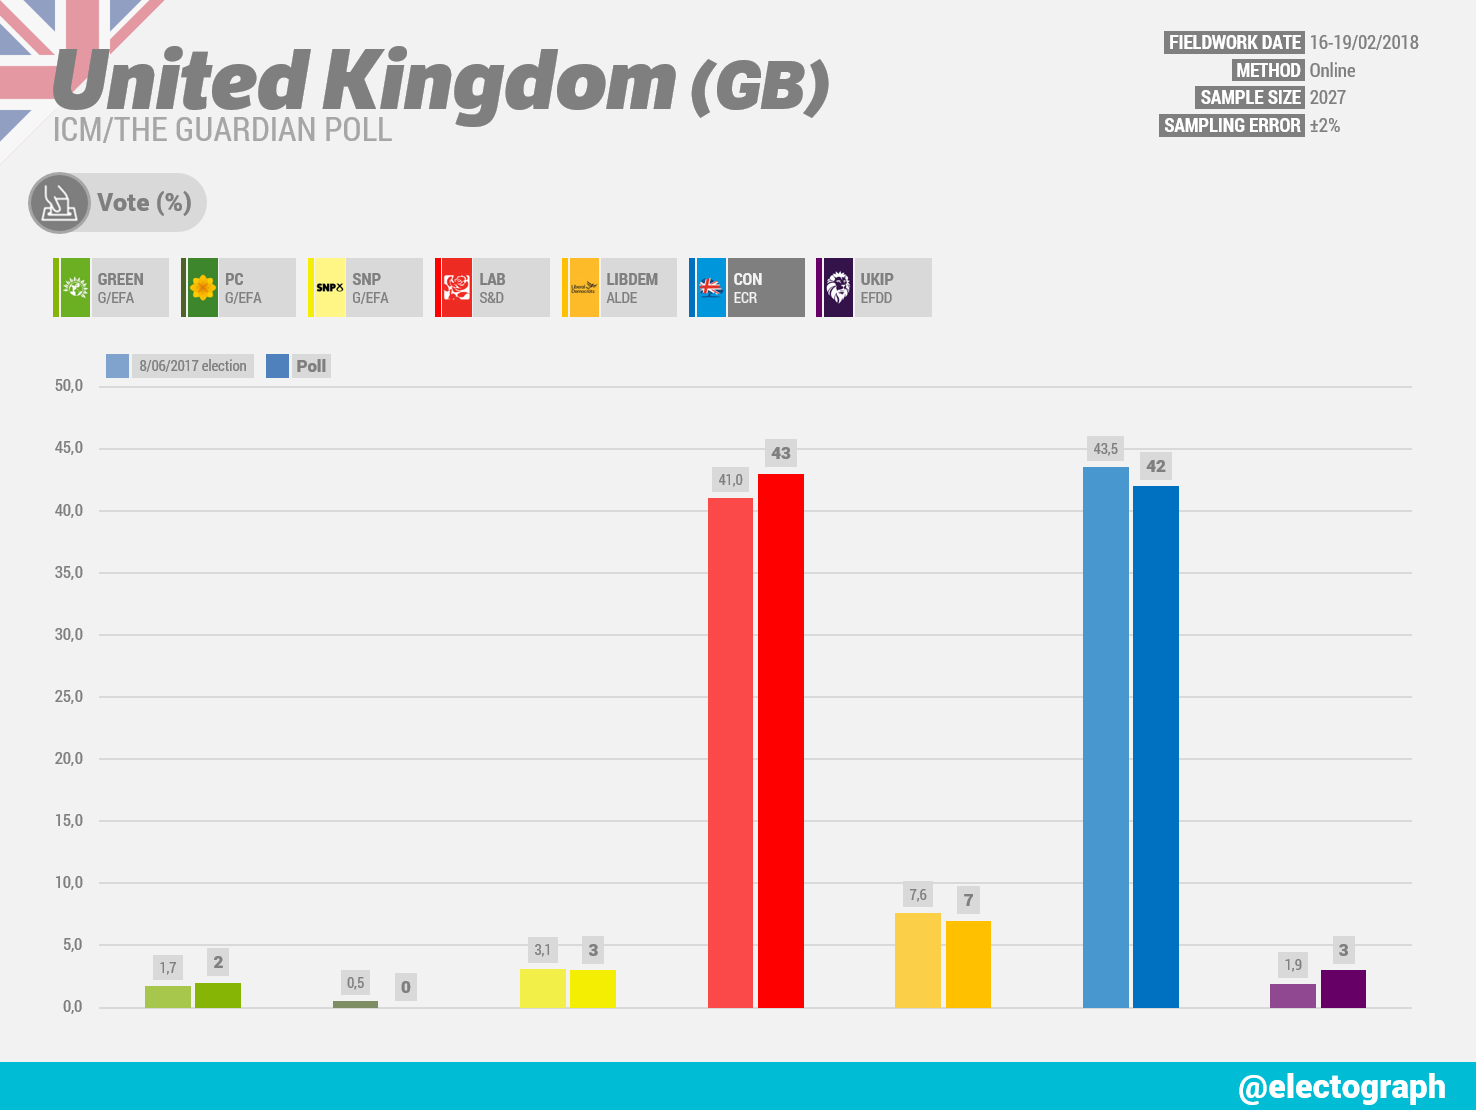 UNITED KINGDOM ICM poll chart for The Guardian, February 2018